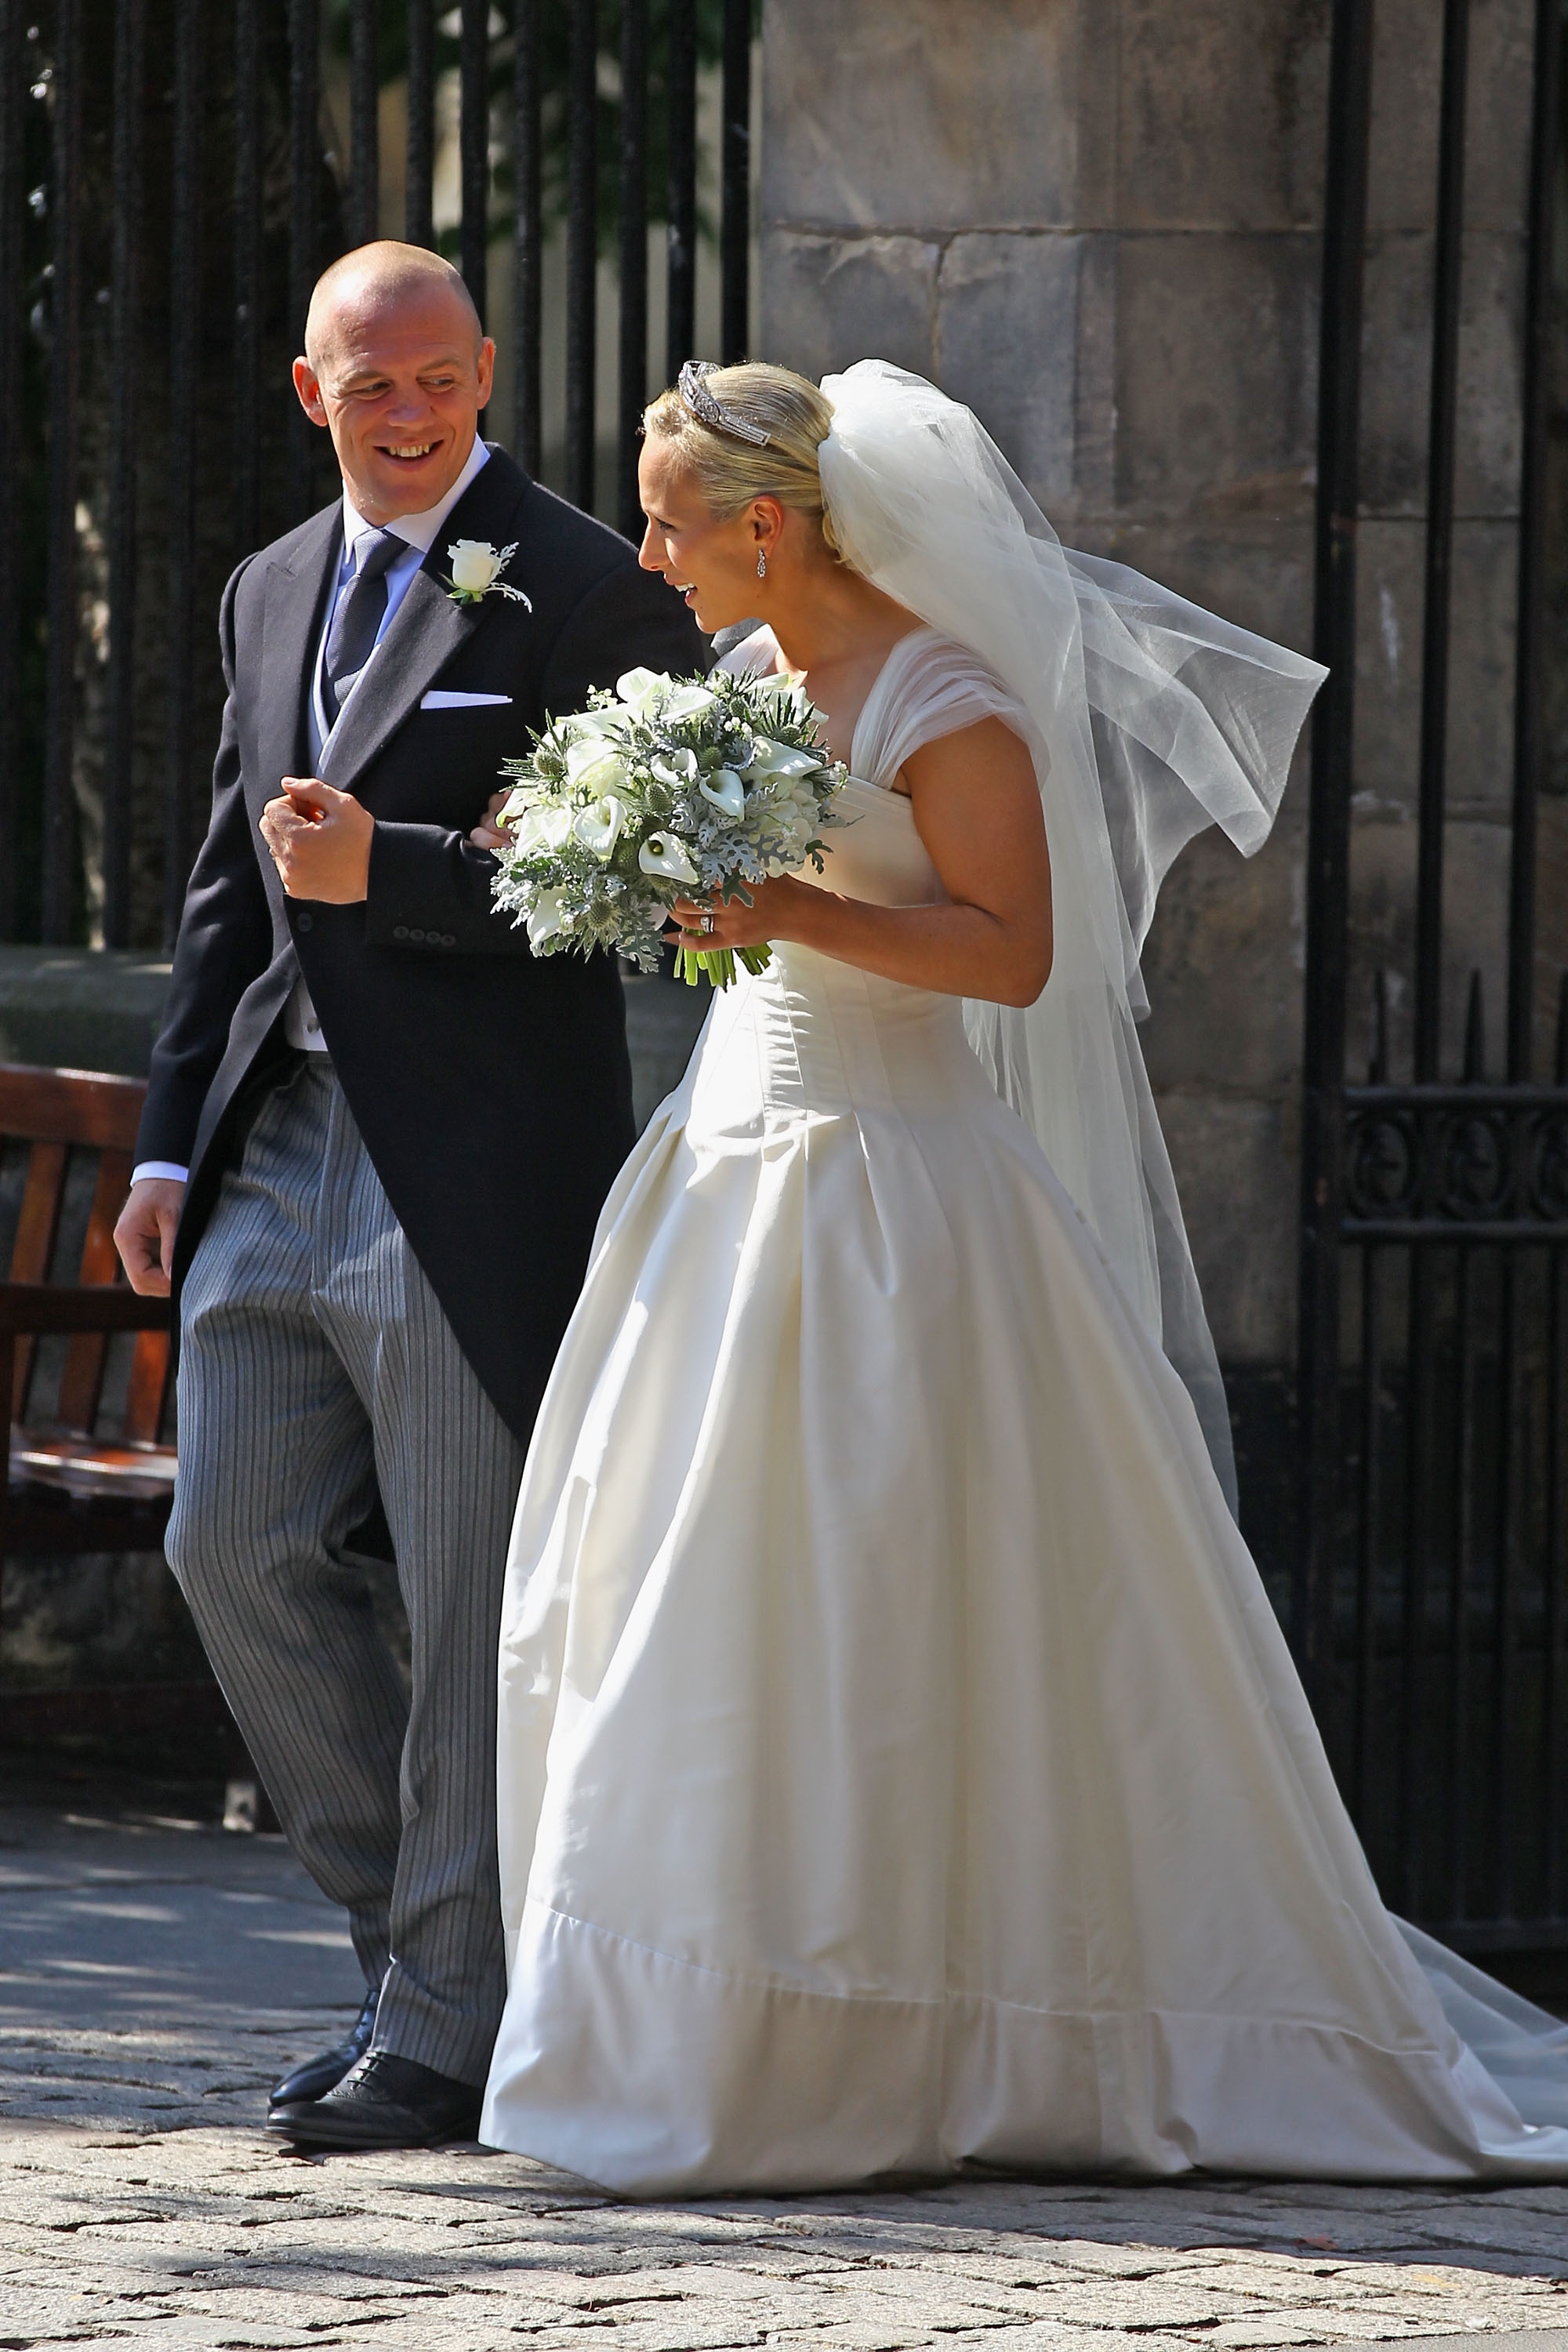 Pictures of Zara Phillips and Mike Tindall's Royal Wedding ...